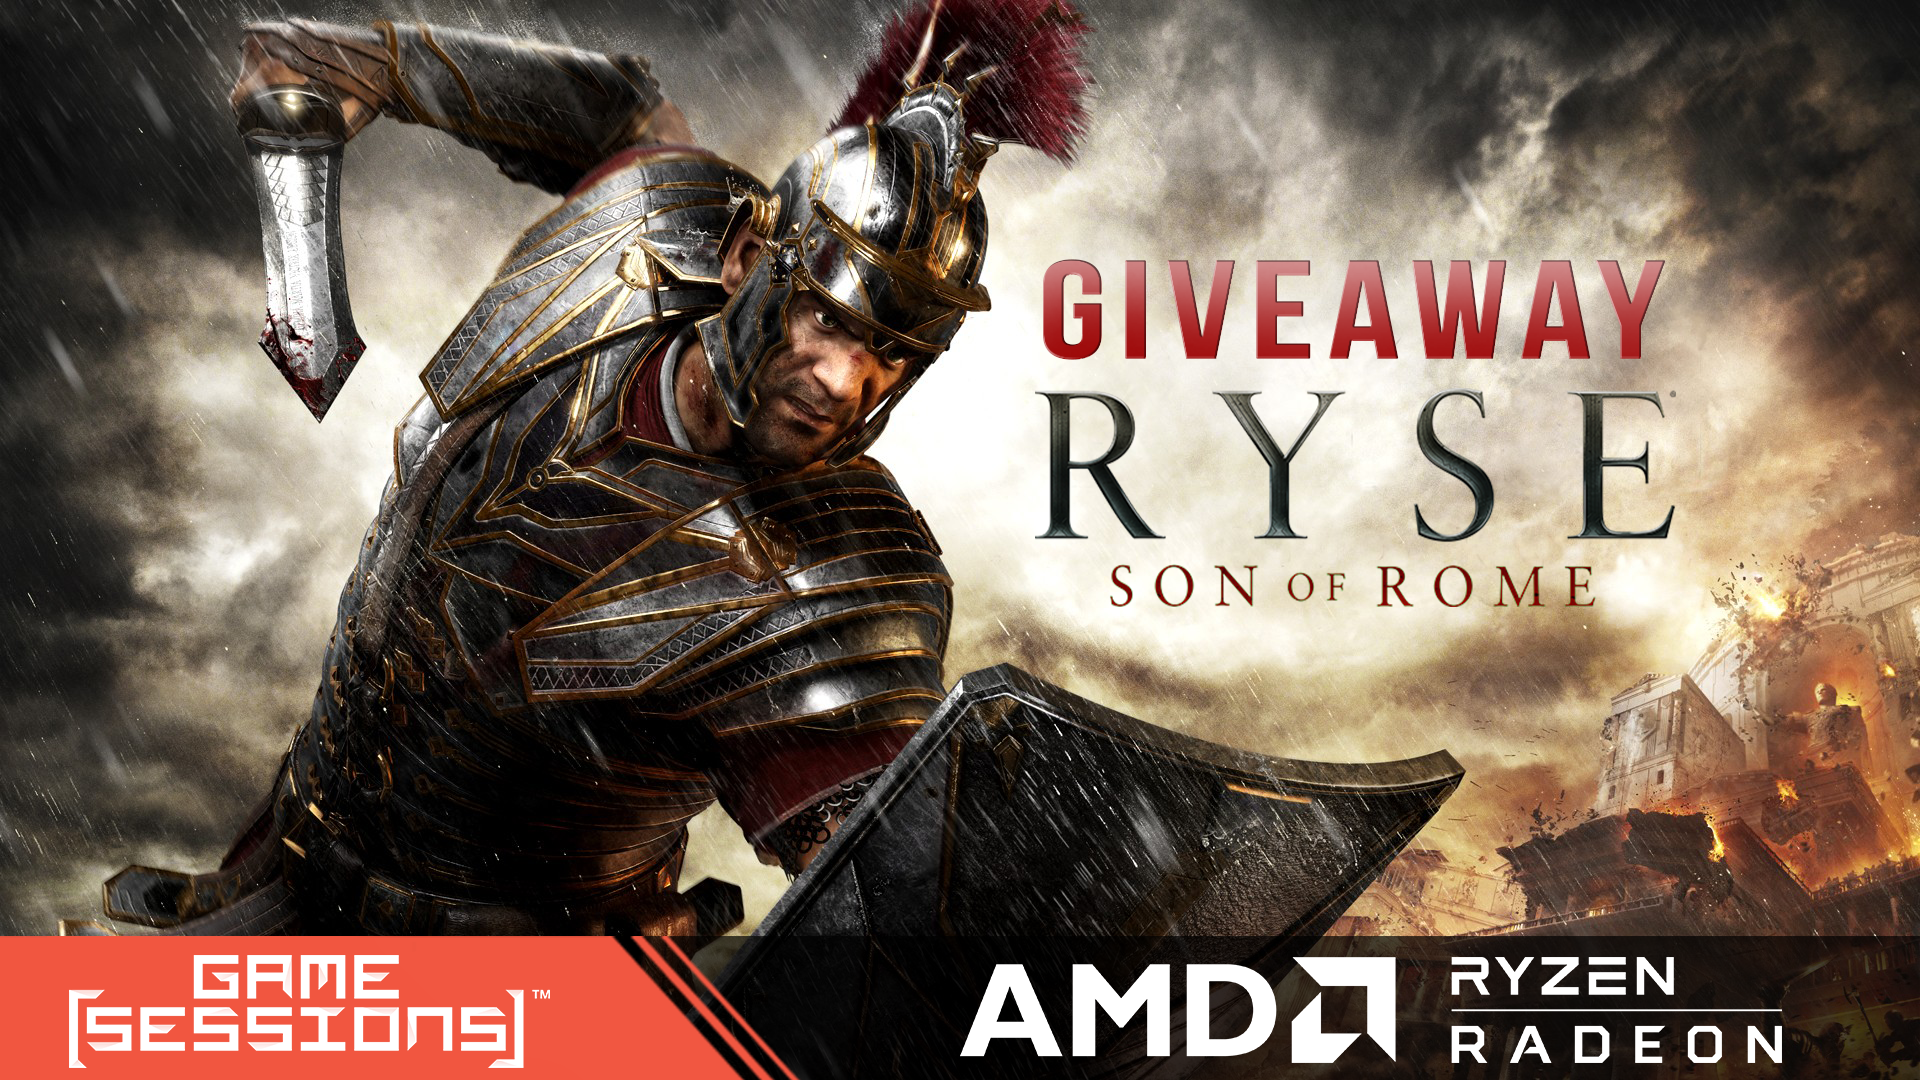 GameSessions Giveaways Launches with RYSE: Son of Rome - #GTUSA 1